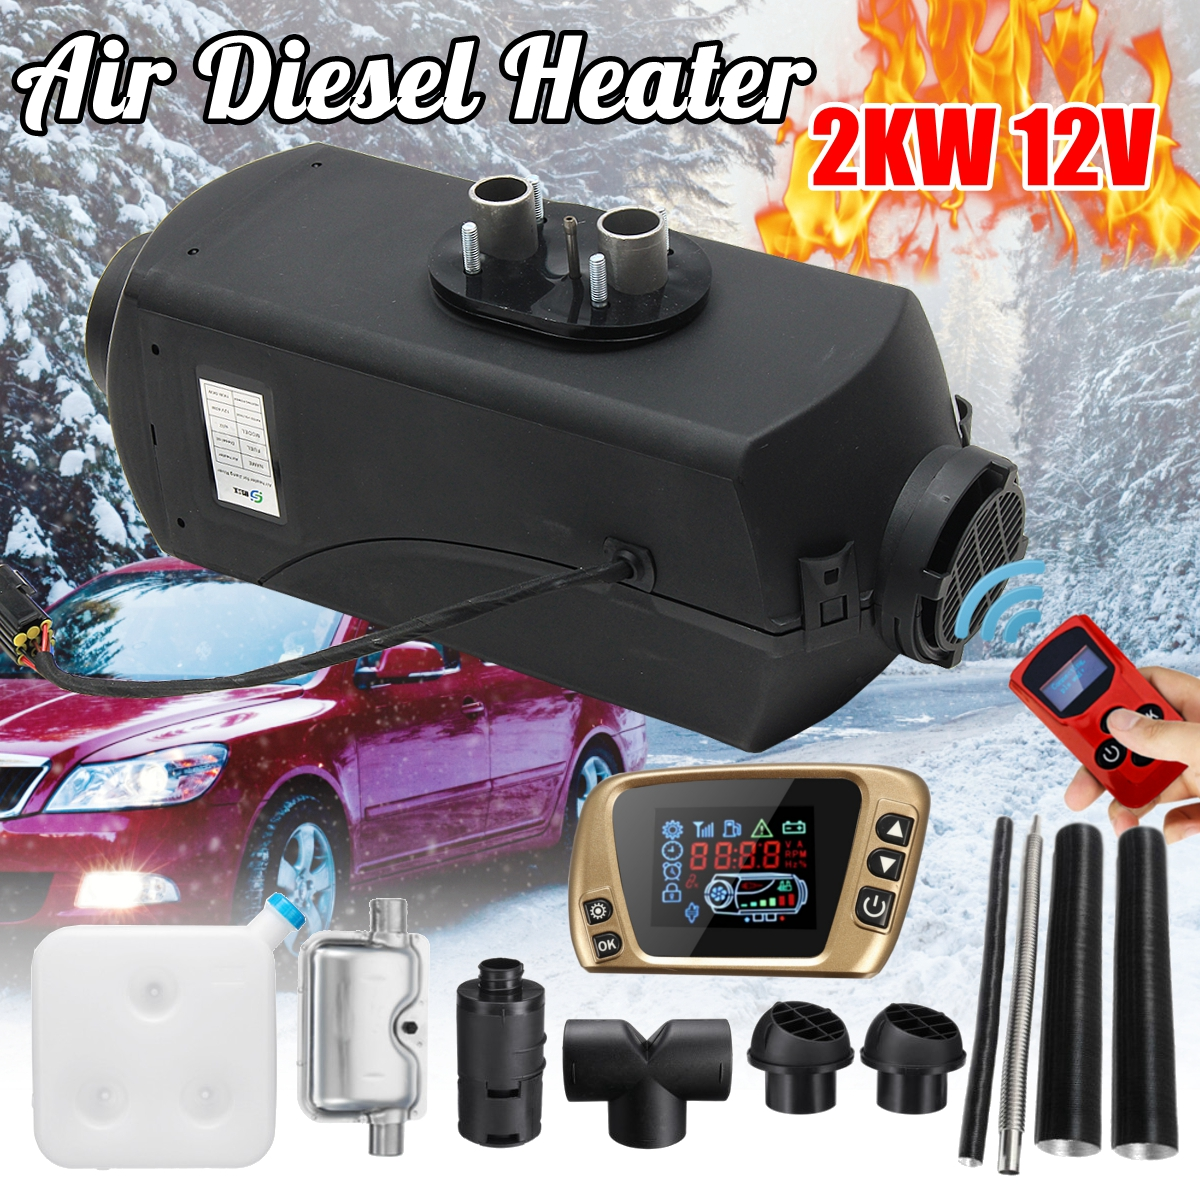 12V 2kw Diesels Air Parking Heater Air Heating LCD Switch with Silencer and Remote Control For Trucks Boats Car Trailer Heater high quality intake silencer and exhaust muffler for air parking heater